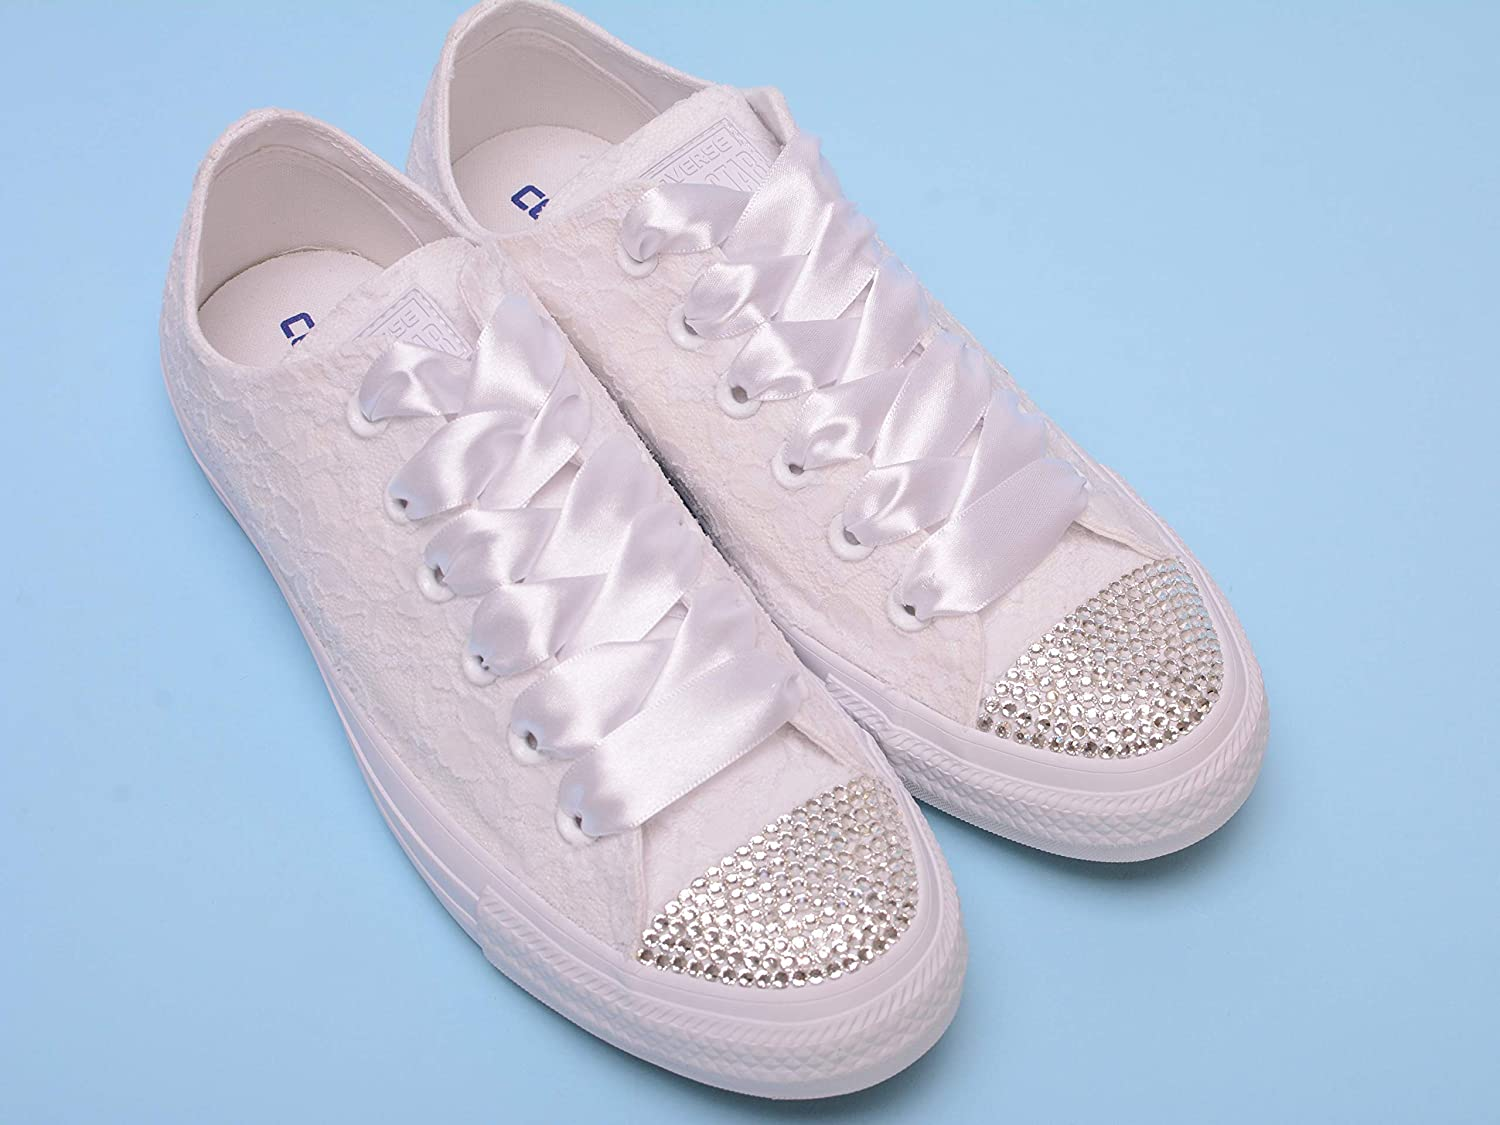 4957acfe1471e7 Amazon.com  White Bling Sneakers For Bride